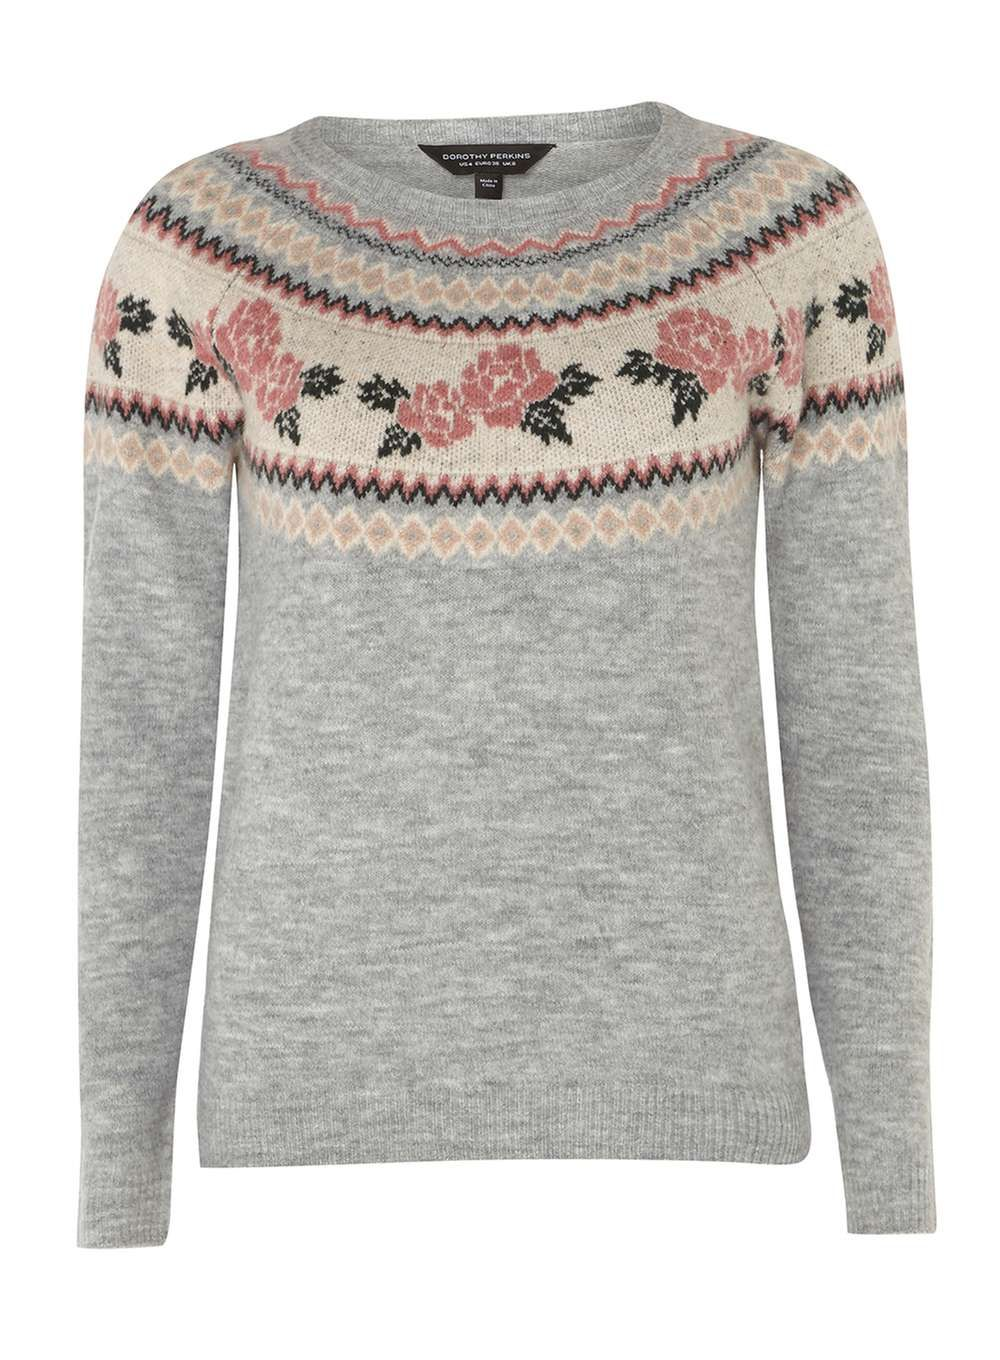 Shopping Online Clearance Clearance 100% Guaranteed Dorothy Perkins Womens Floral Fair Isle Jumper- Latest Cheap Online 6DLsG